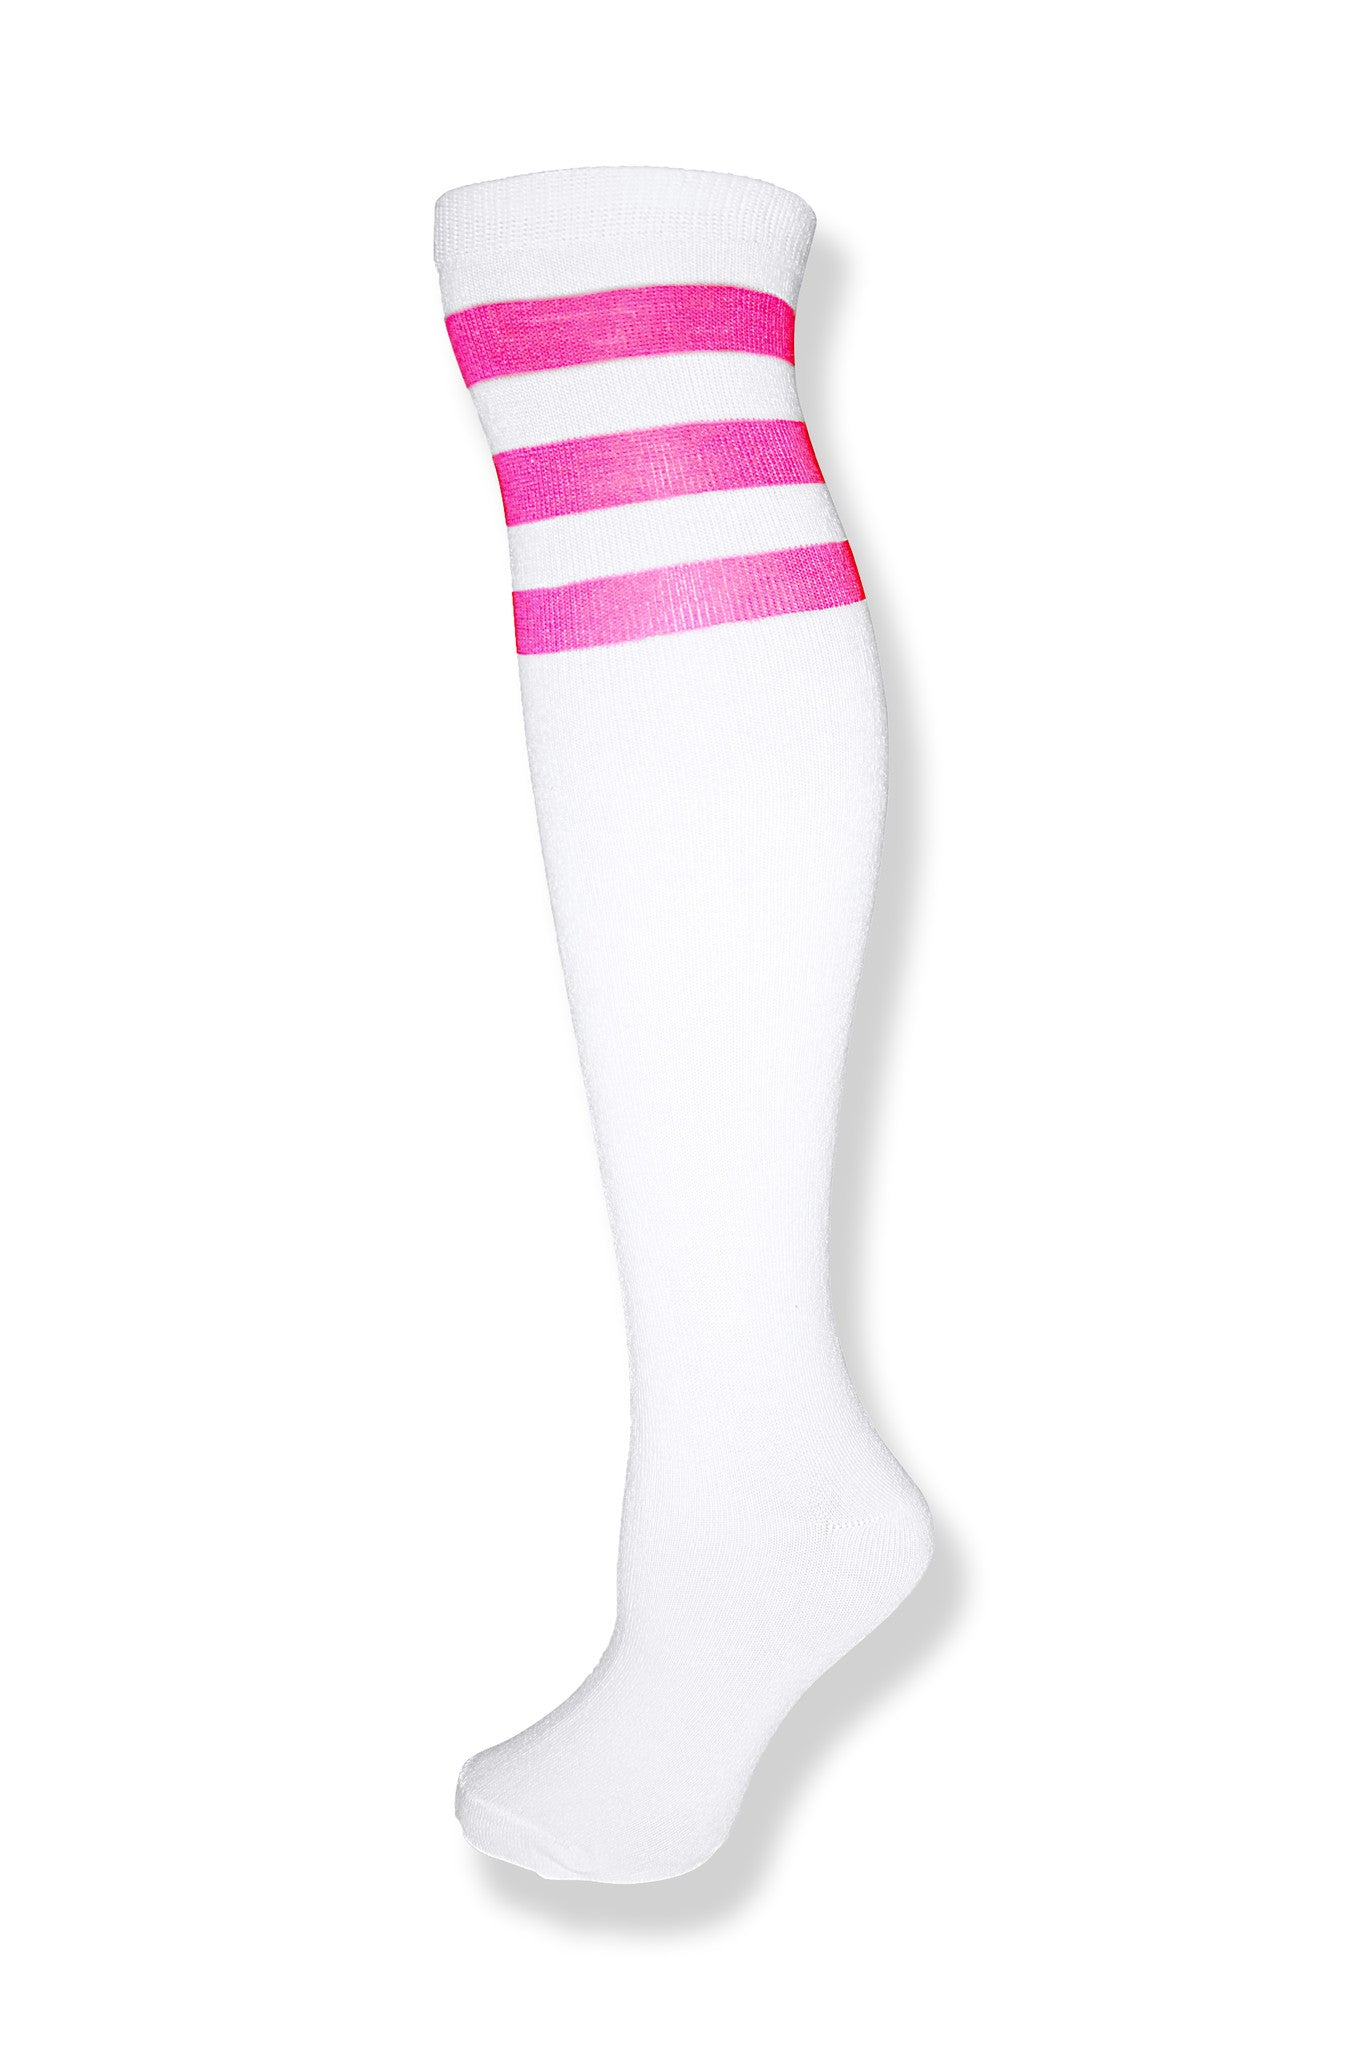 White with Neon Pink Stripes Knee High Sock